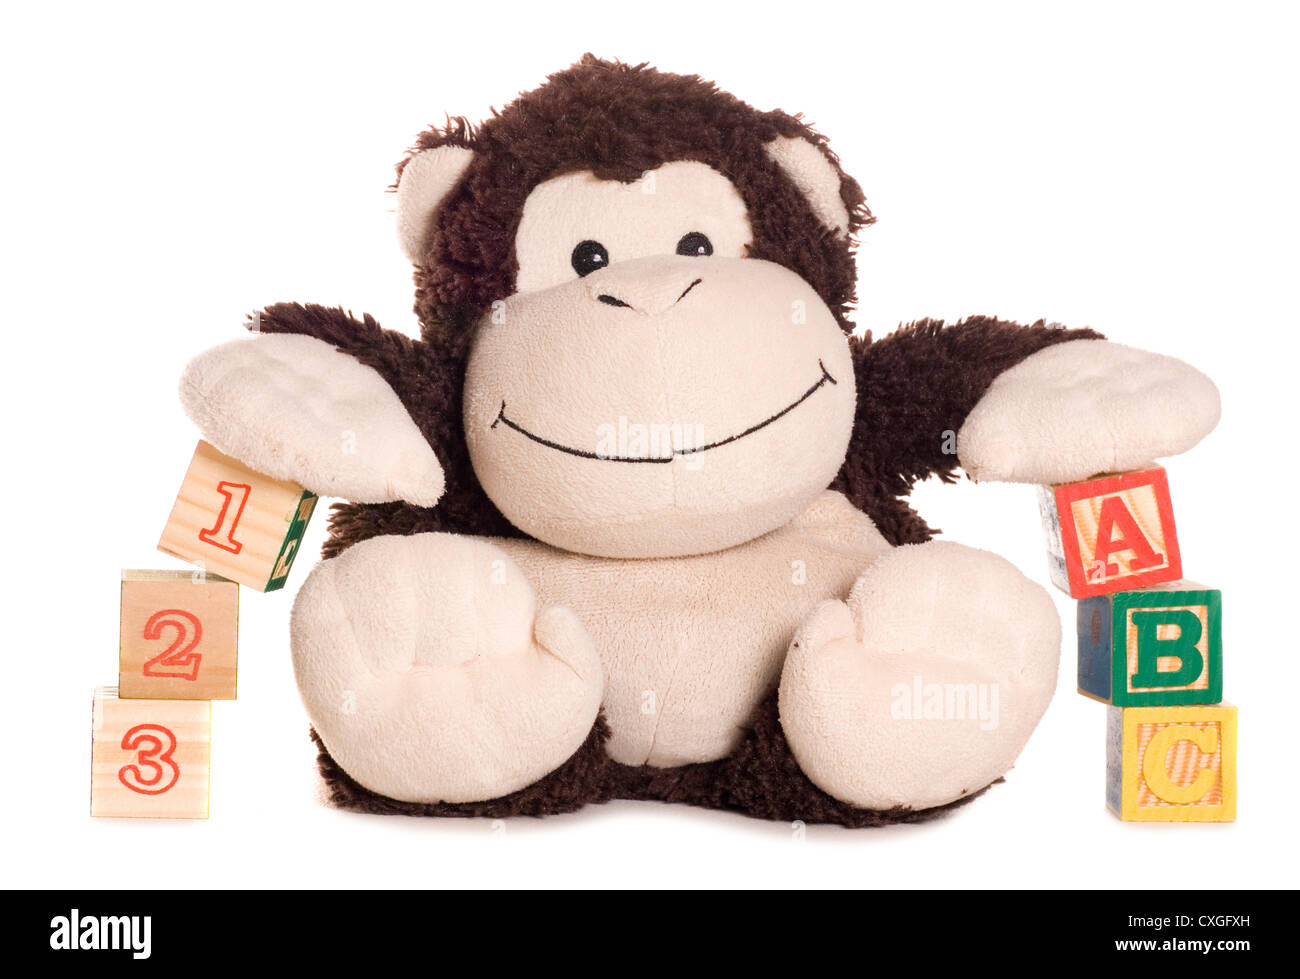 Abc and 123 blocks with soft toy monkey studio cutout - Stock Image